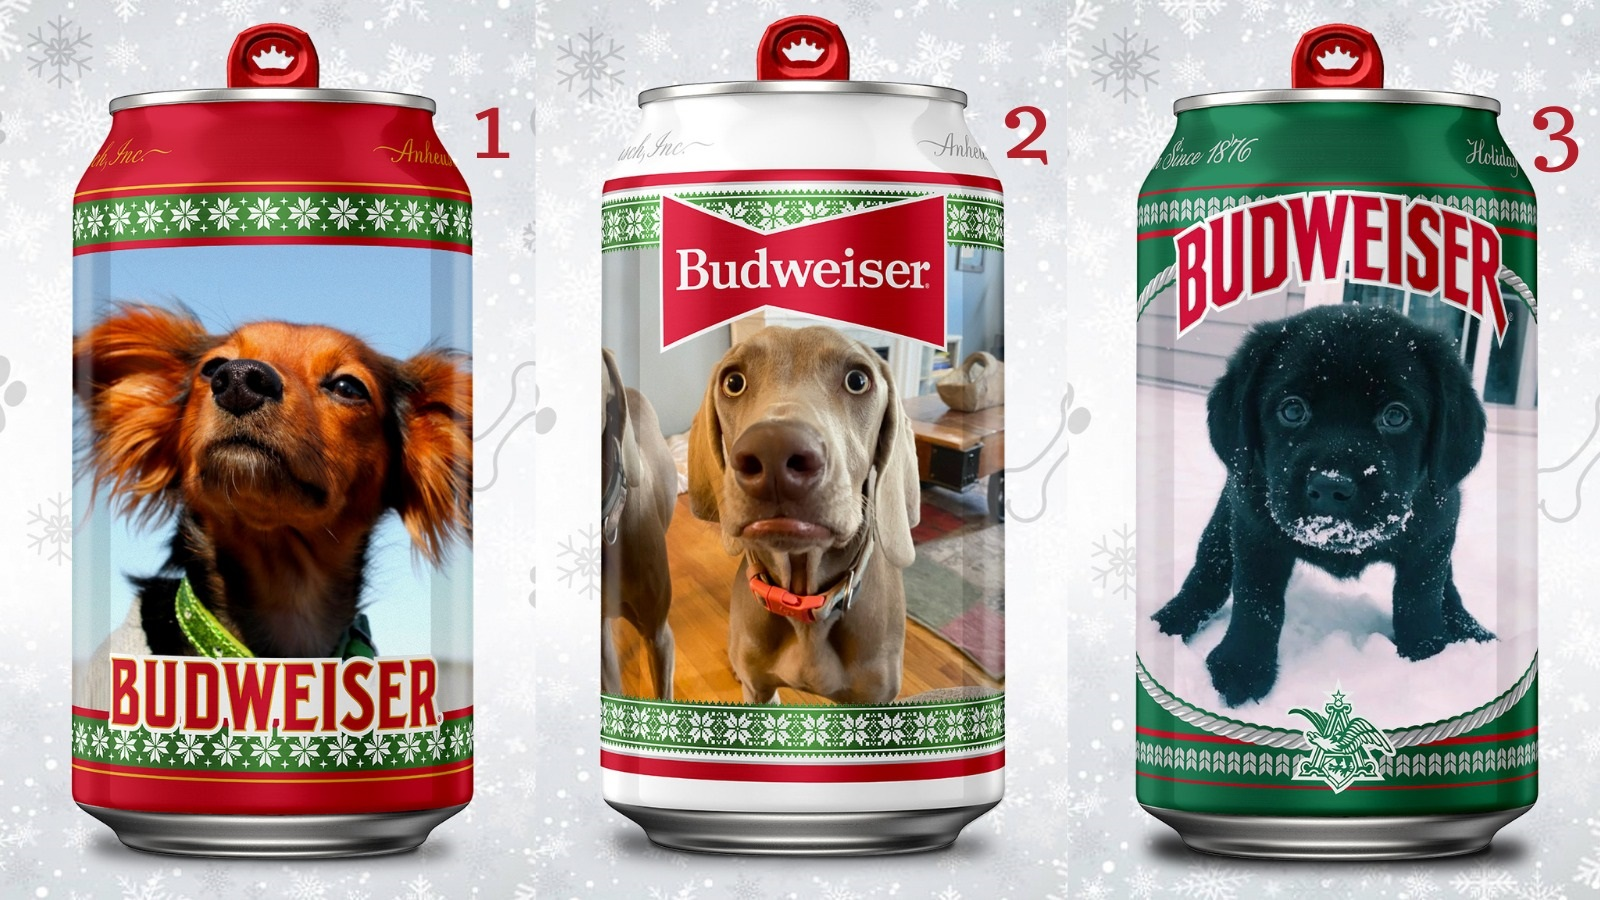 Budweiser could put a picture of your dog on its beer can